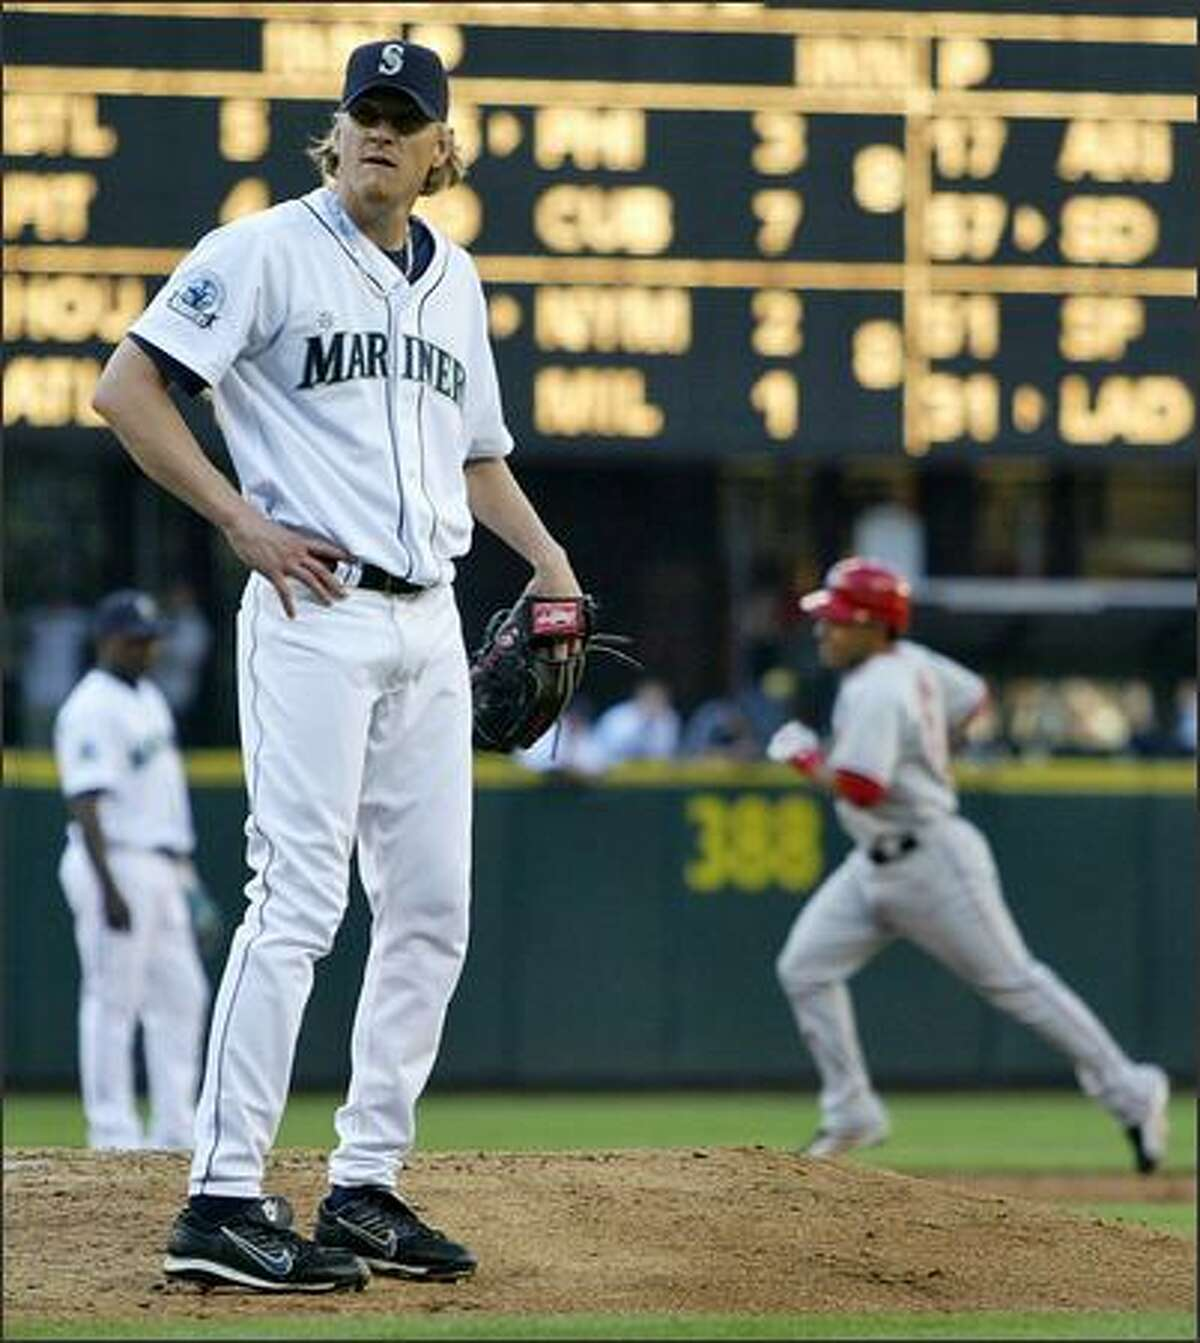 Los Angeles Angels' Maicer Izturis (6) rounds second after hitting a home run off of Seattle Mariners' Jeff Weaver (36) during second inning action at Safeco Field in Seattle, Wash., Tuesday July 31, 2007.